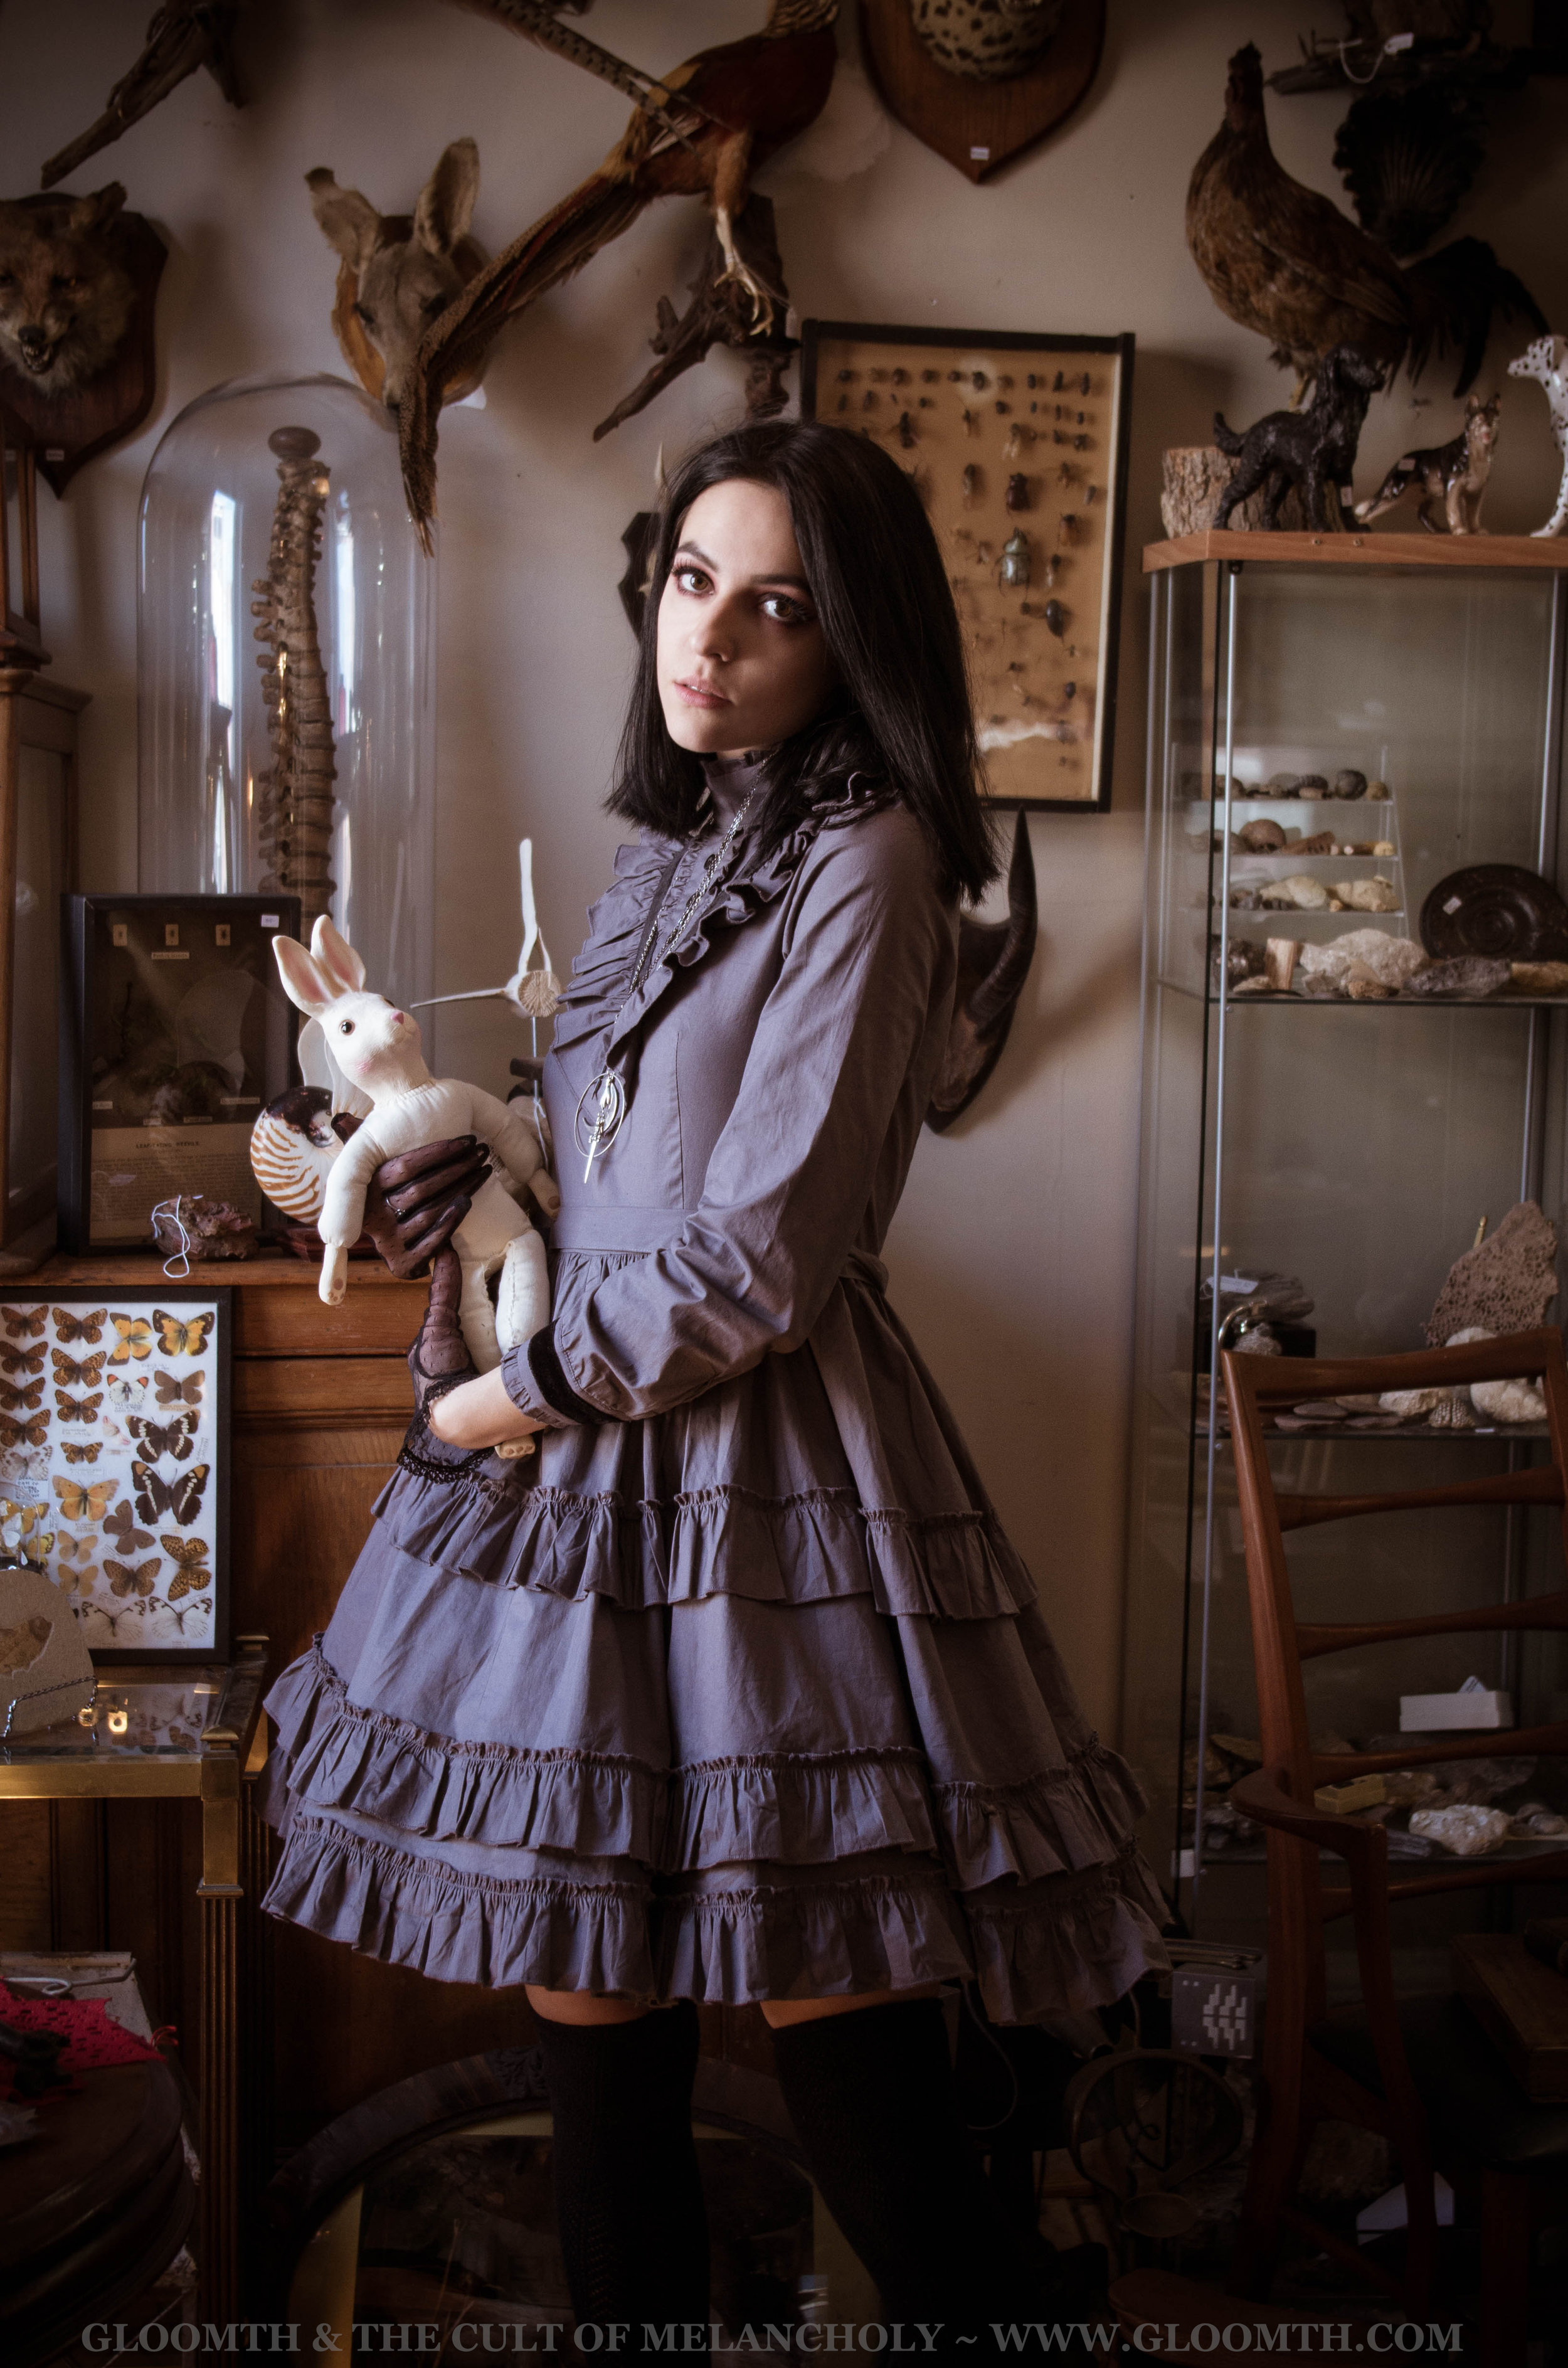 antique-cabinet-of-curiousities-gloomth-lolita-gothic-fashion7.jpg